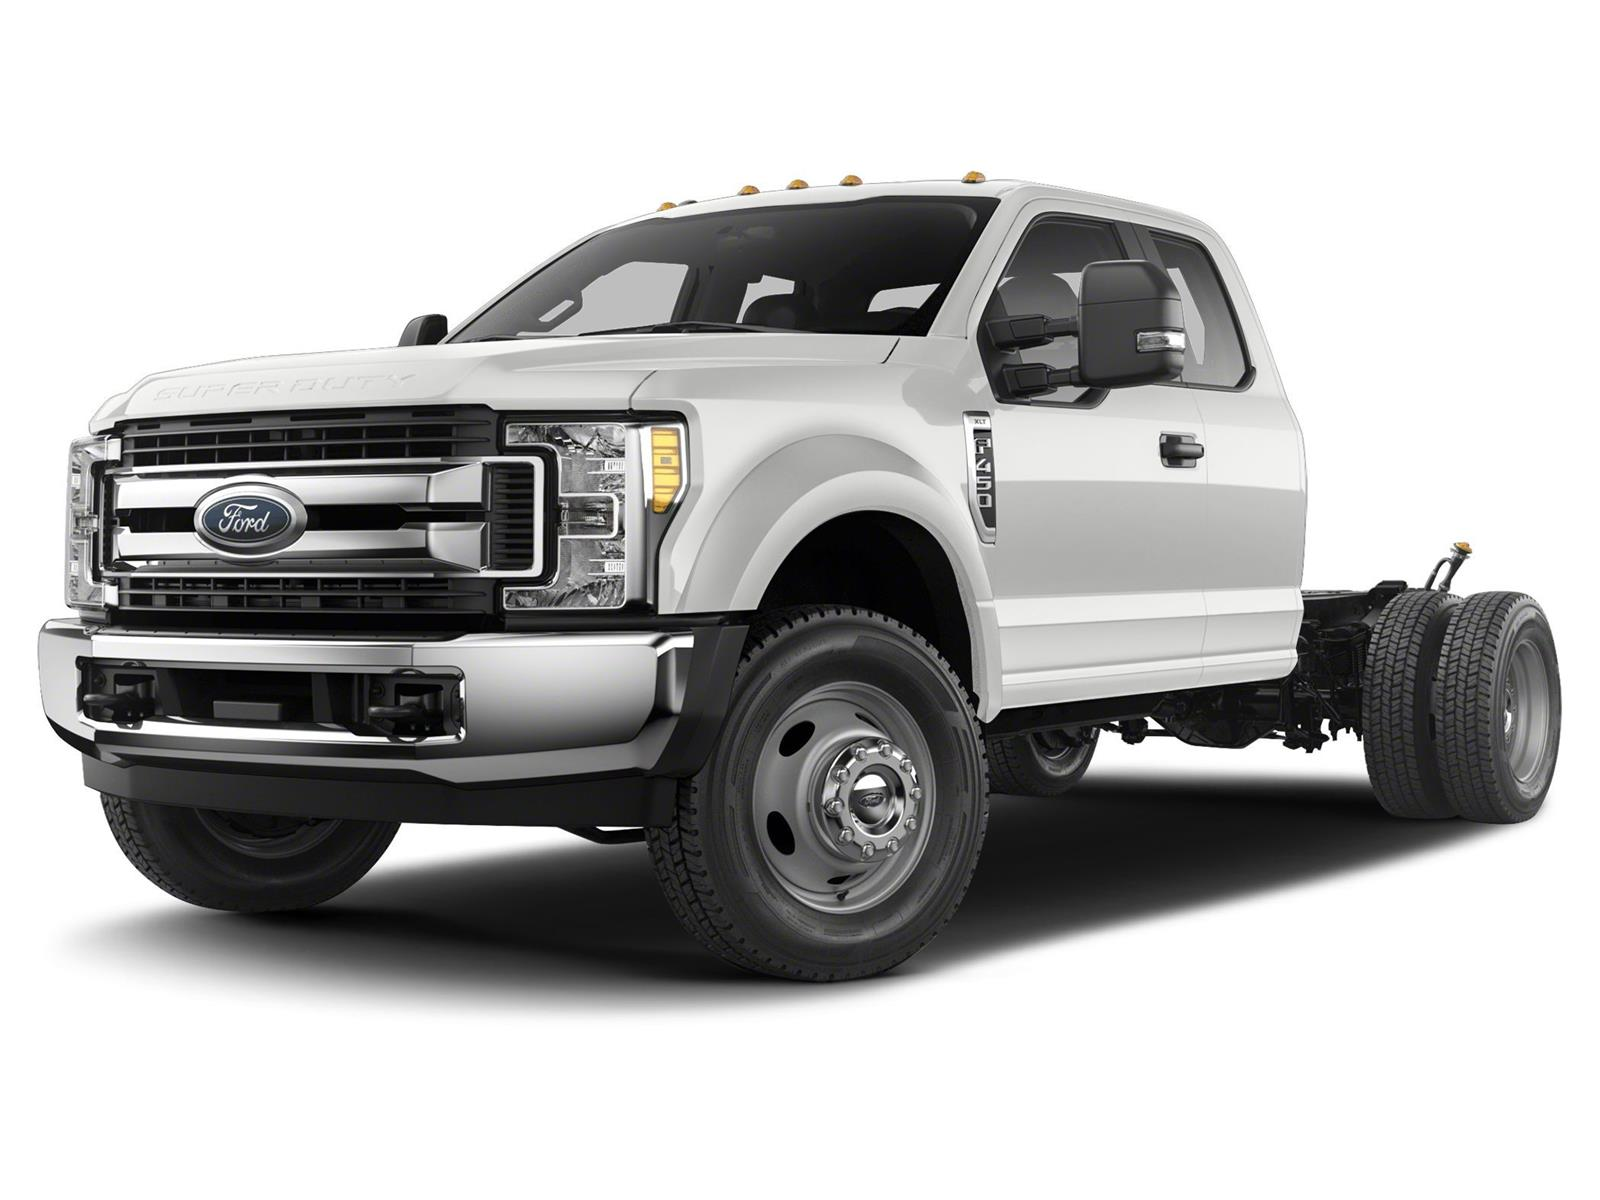 2019 Ford F-550 Super Cab DRW 4x4, Cab Chassis #10472T - photo 1